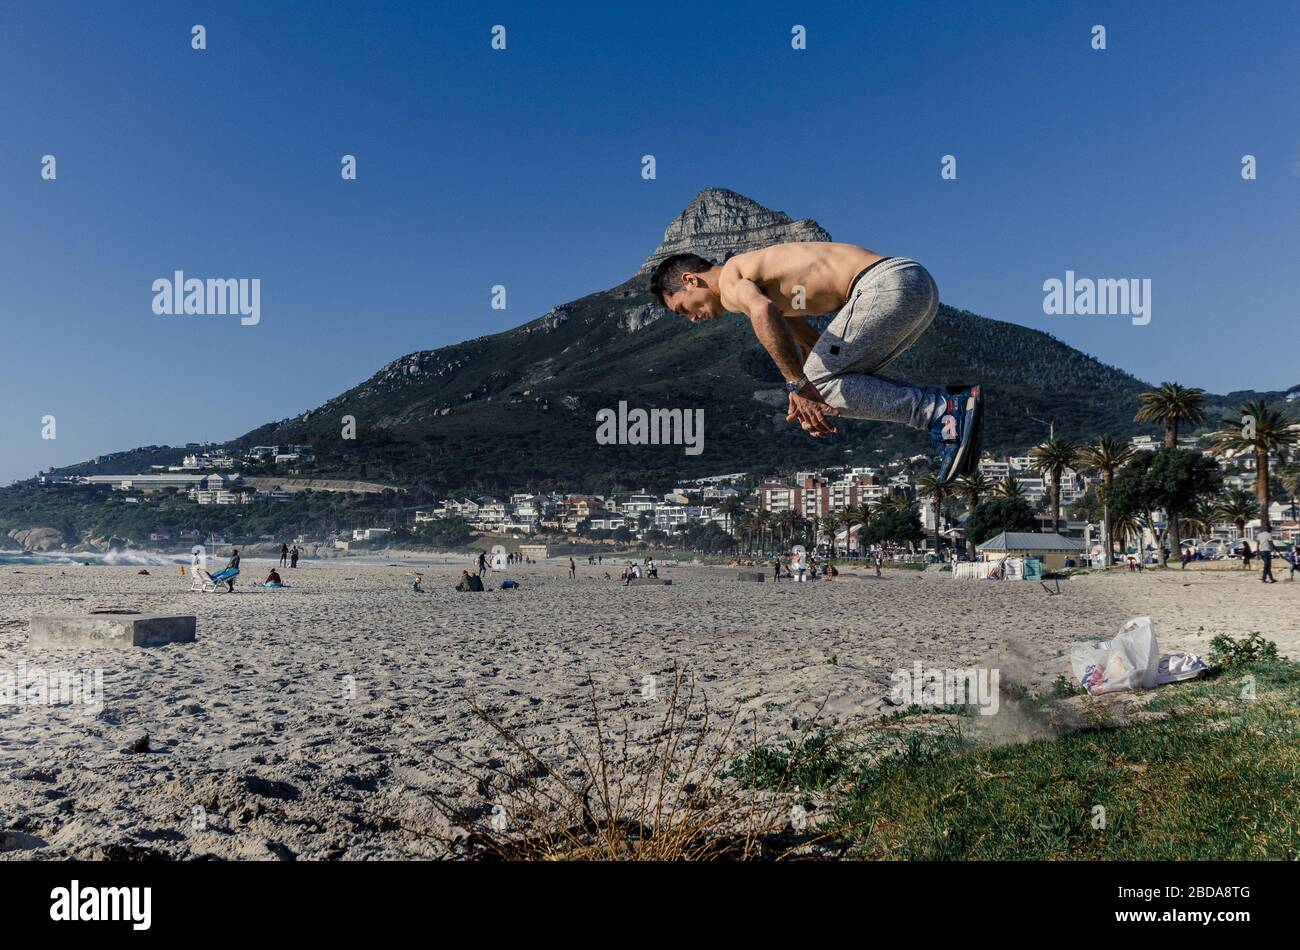 Young man on beach practicing somersaults and aerobics Camps Bay Cape Town South Africa Stock Photo